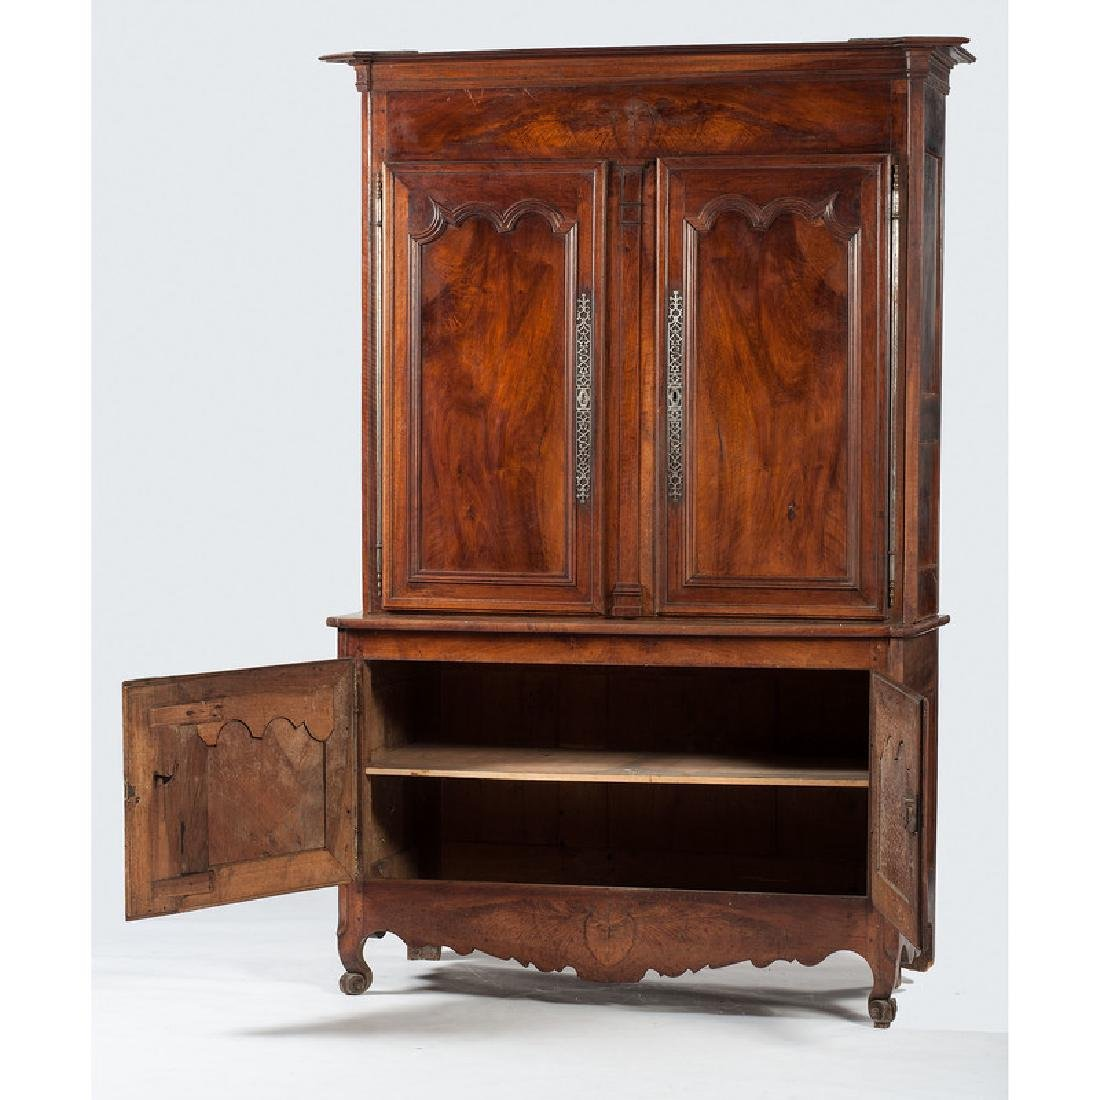 French Provincial Buffet-a-Deux Corps - 2